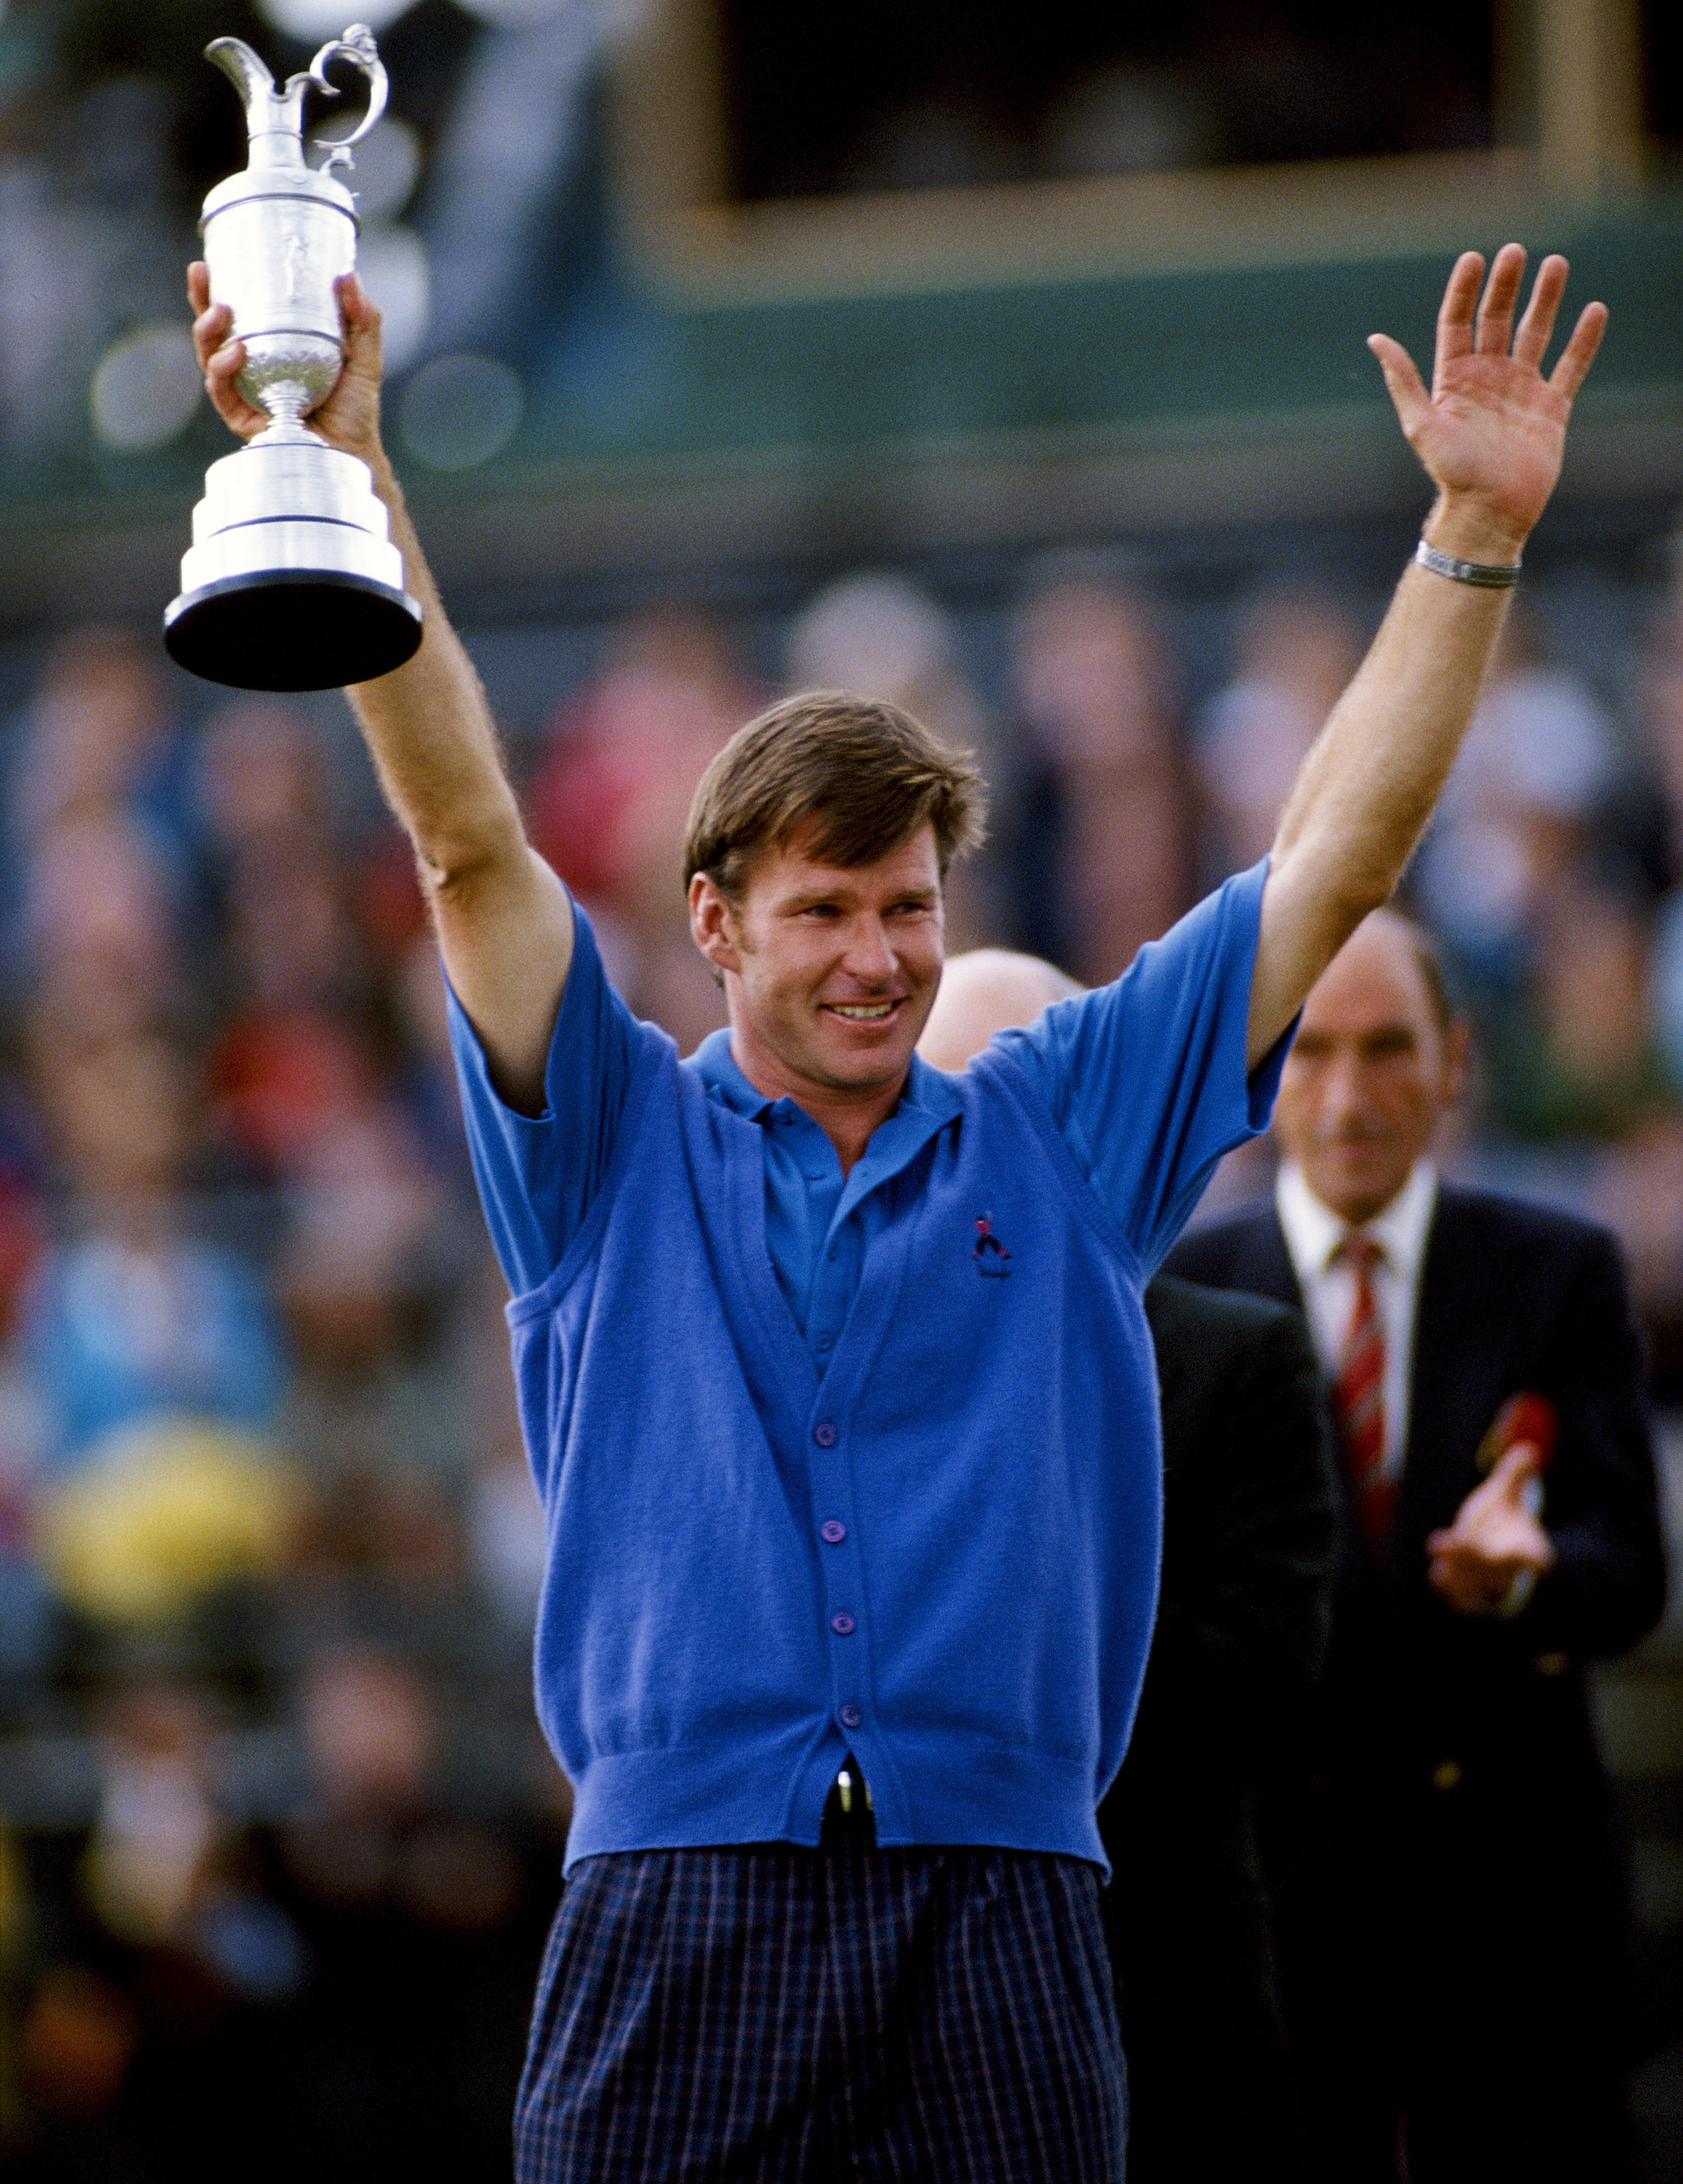 """In his acceptance speech, Faldo infamously said he would """"like to thank the press from the heart of his bottom"""" in reference to several negative articles about him (Photo: Getty Images)"""